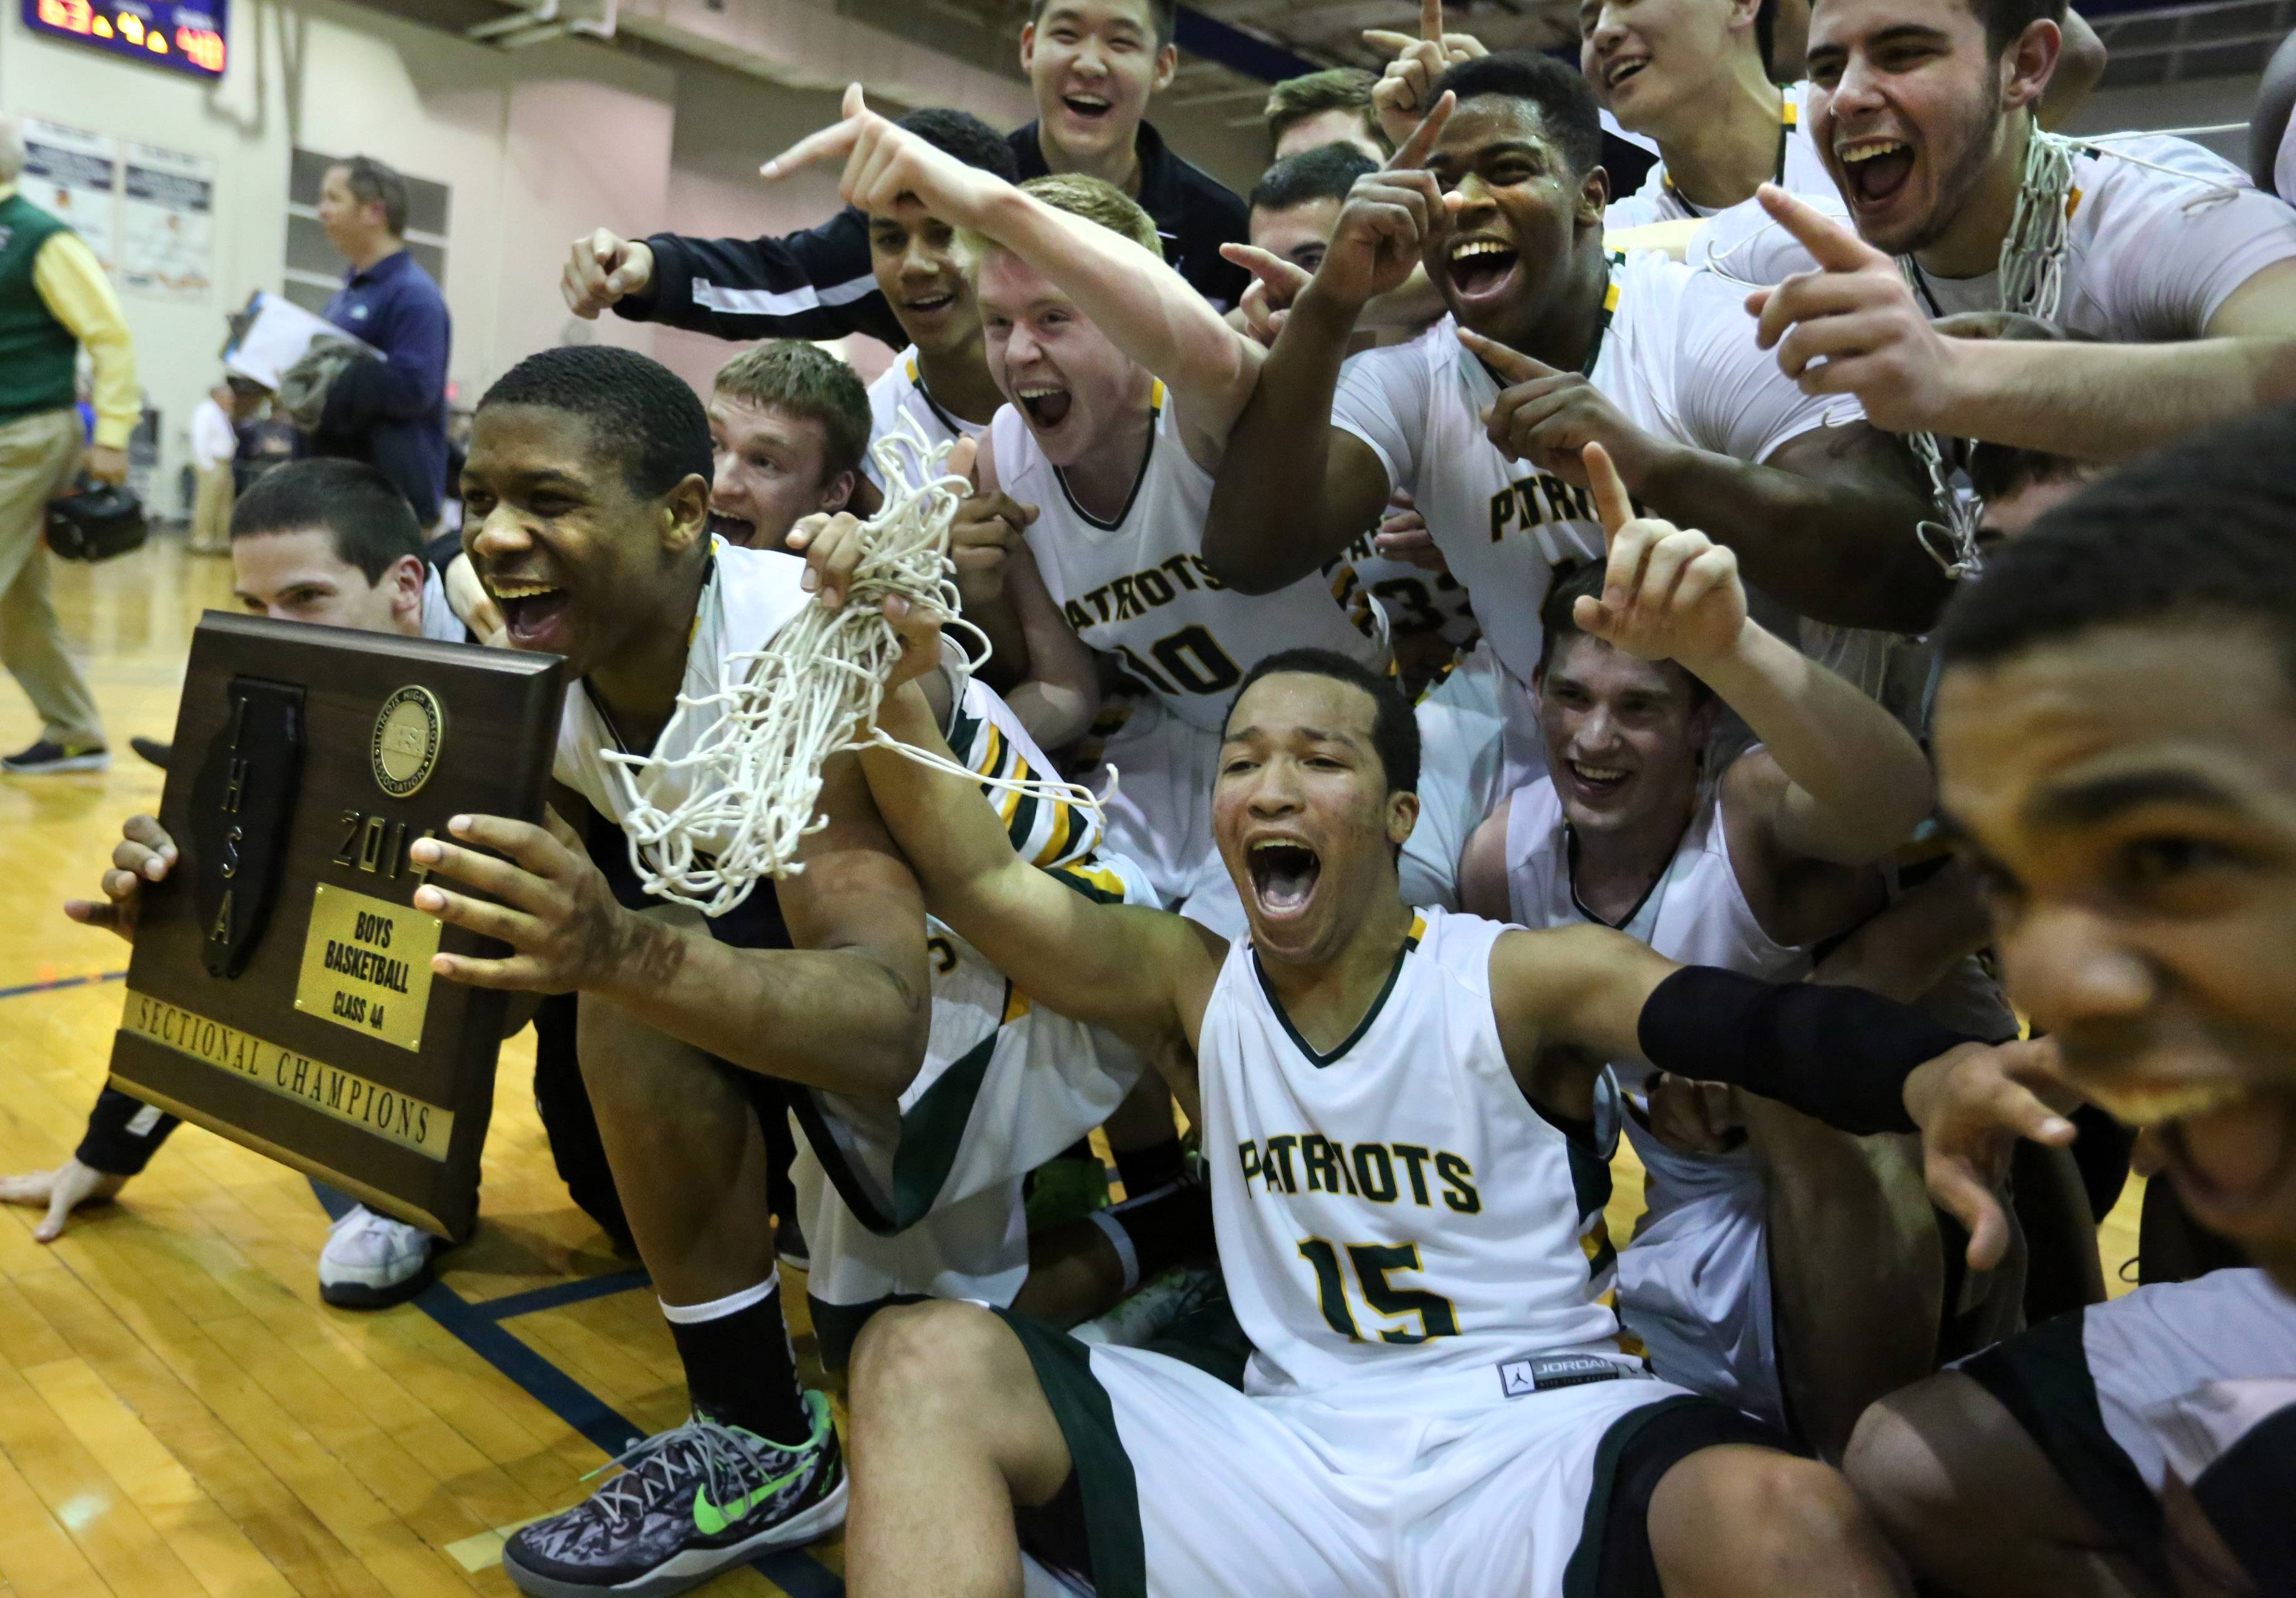 Stevenson's Matt Johnson, holding plaque, and Jalen Brunson, middle, celebrate after winning the Class 4A sectional final over Fremd on Friday in Lake Zurich.